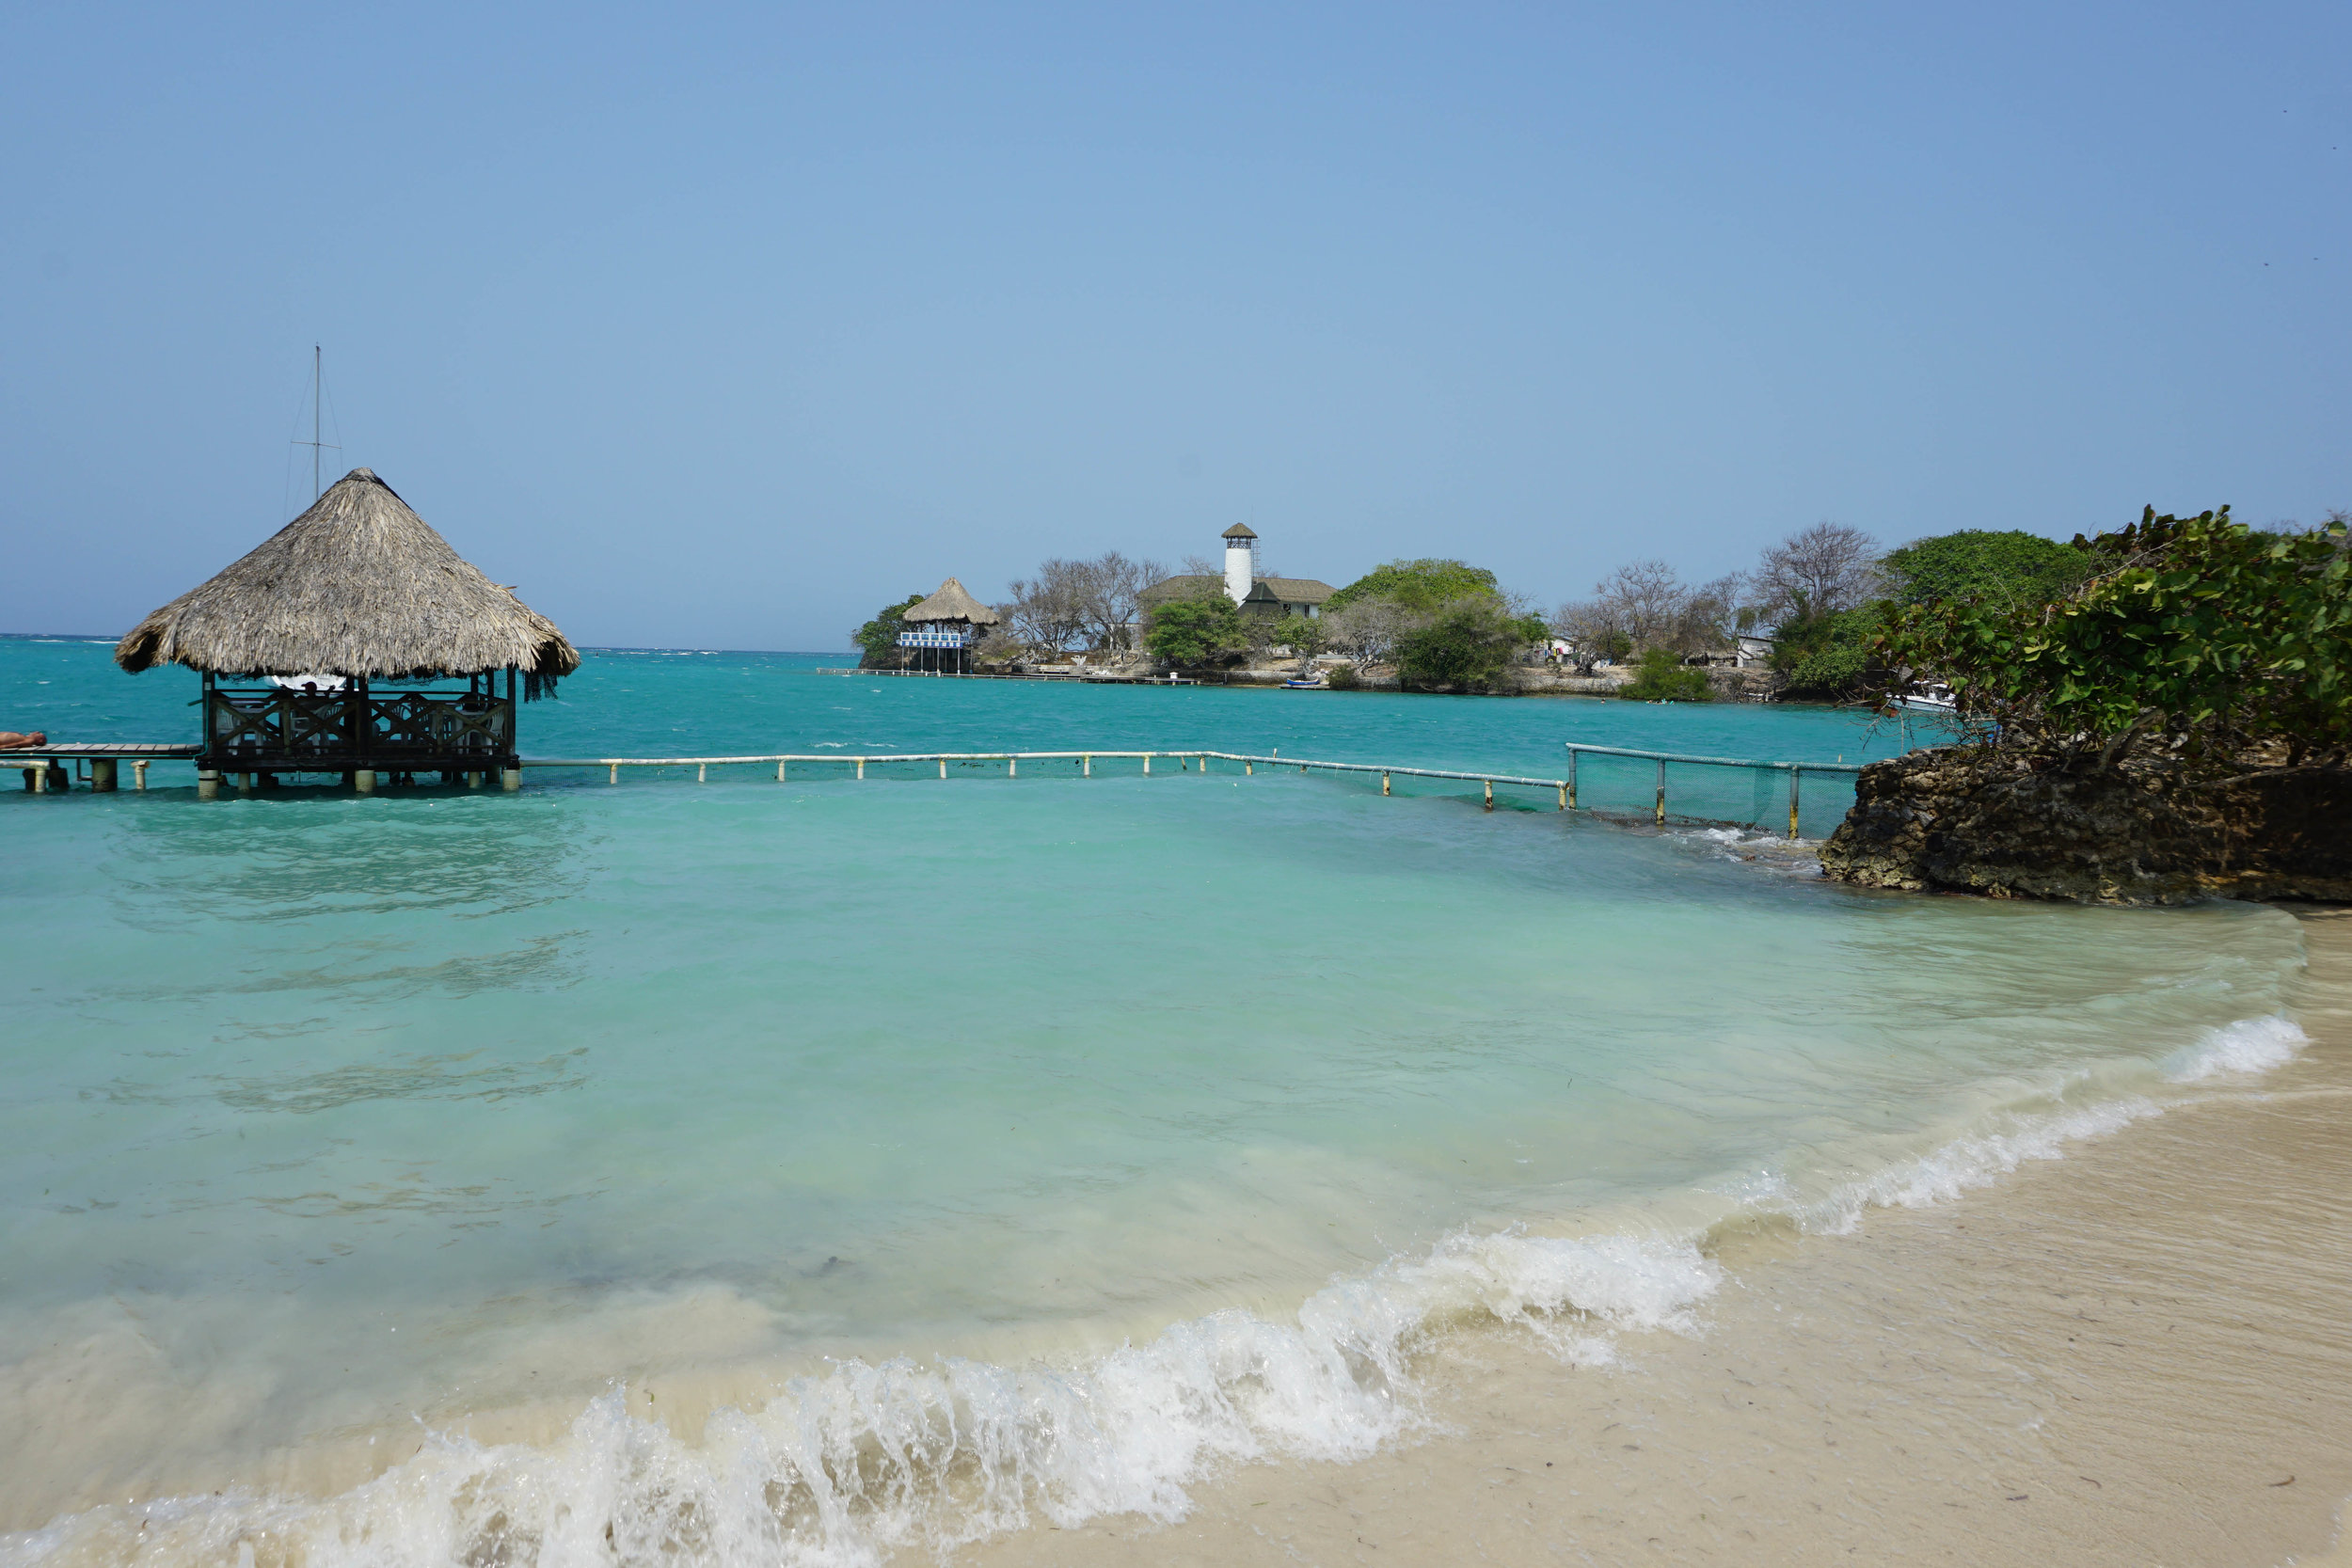 Islas del Rosario, an archipelago off the coast of Cartagena